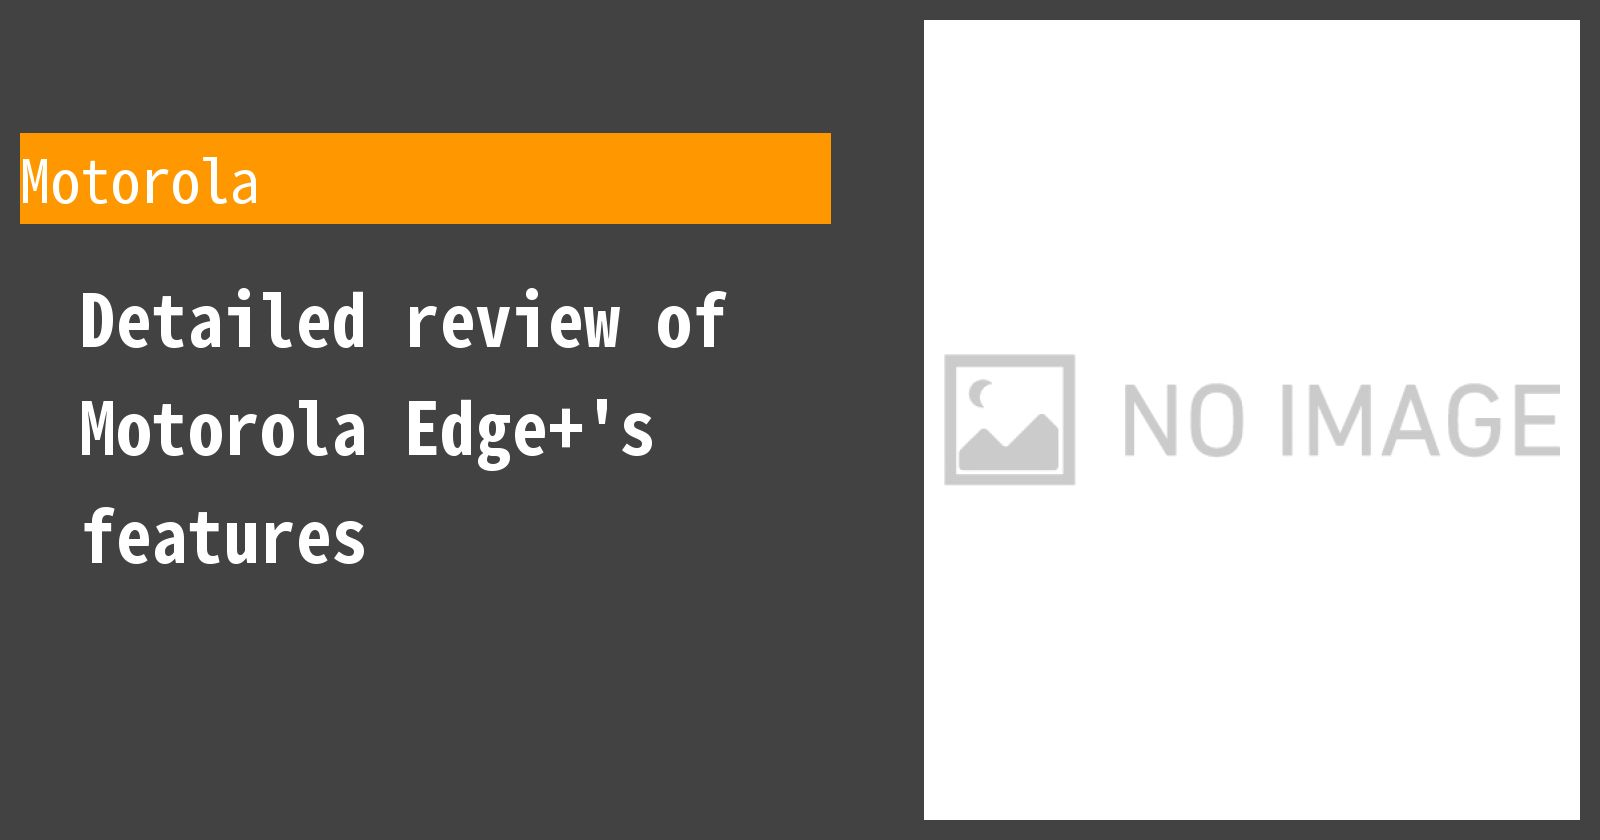 Detailed review of Motorola Edge+'s features